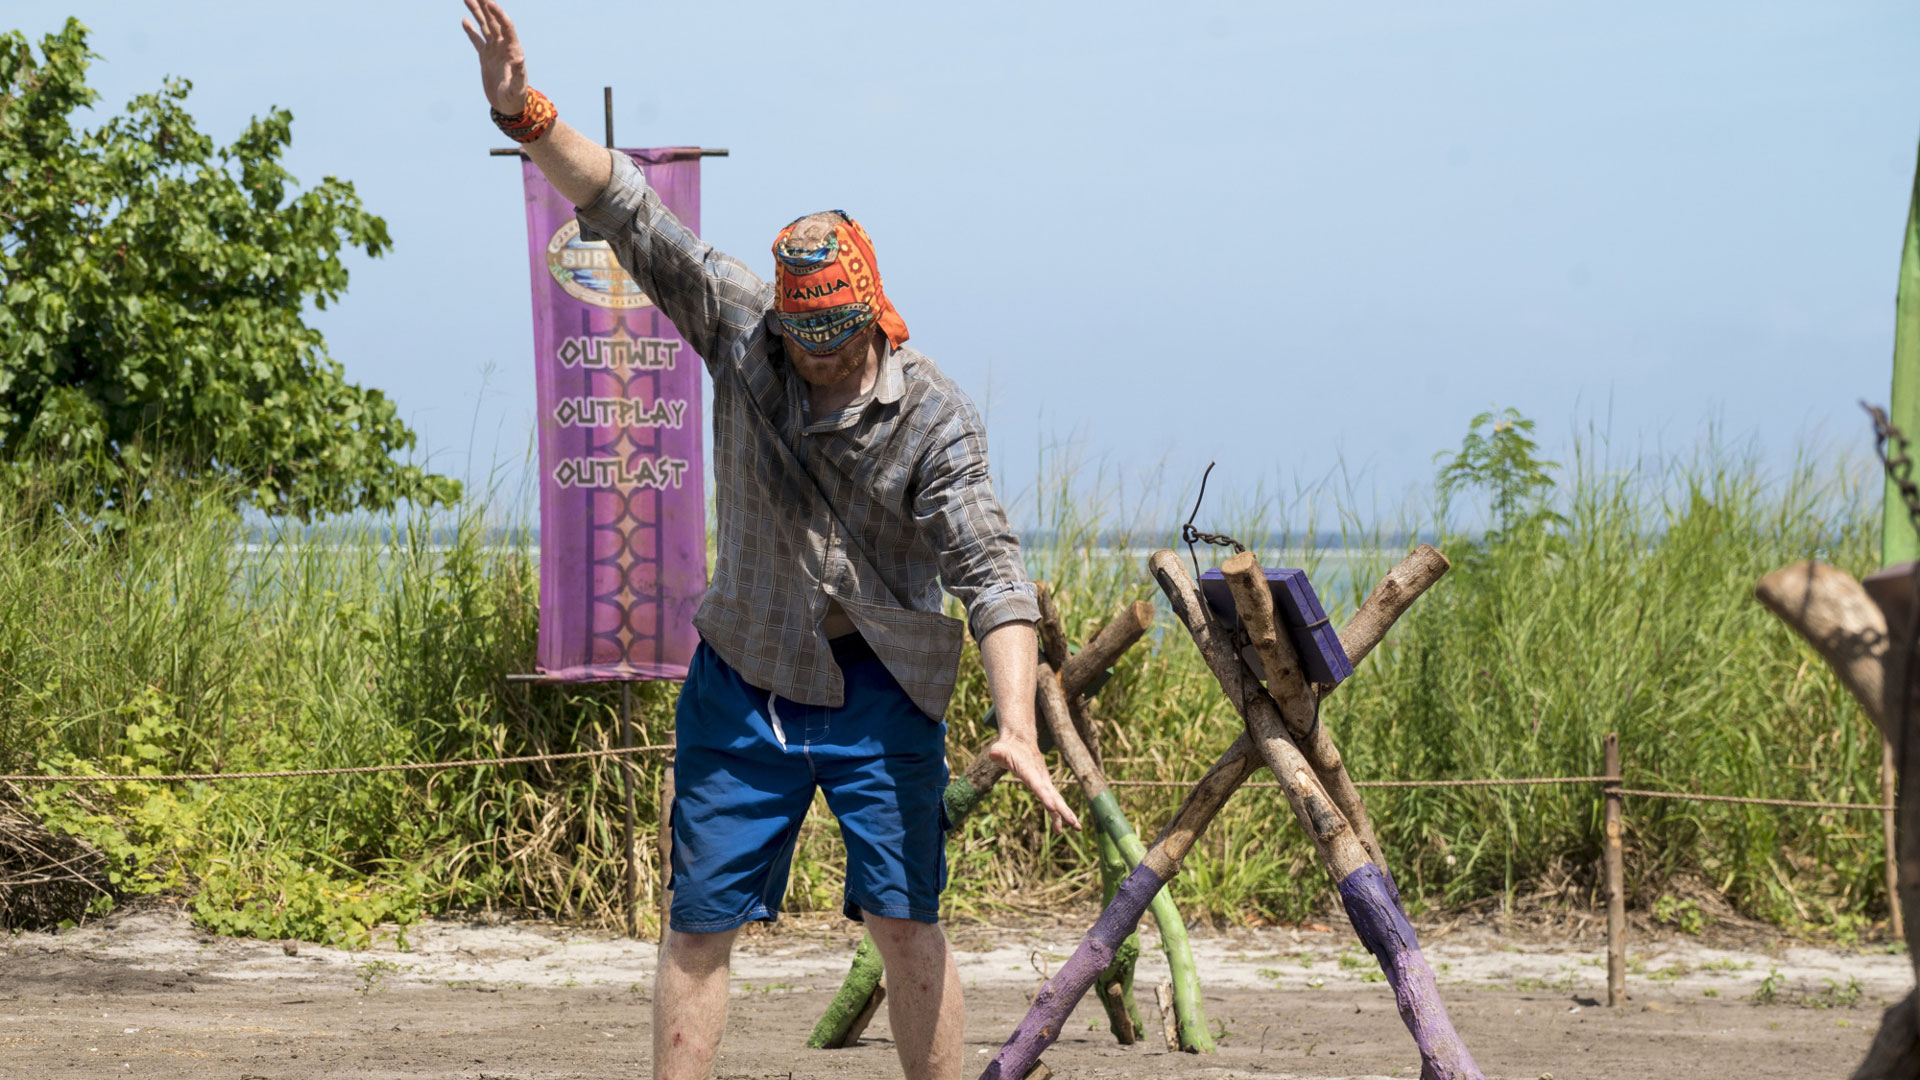 Chris throws a hand up, hoping to find his balance and his way around the obstacle course.